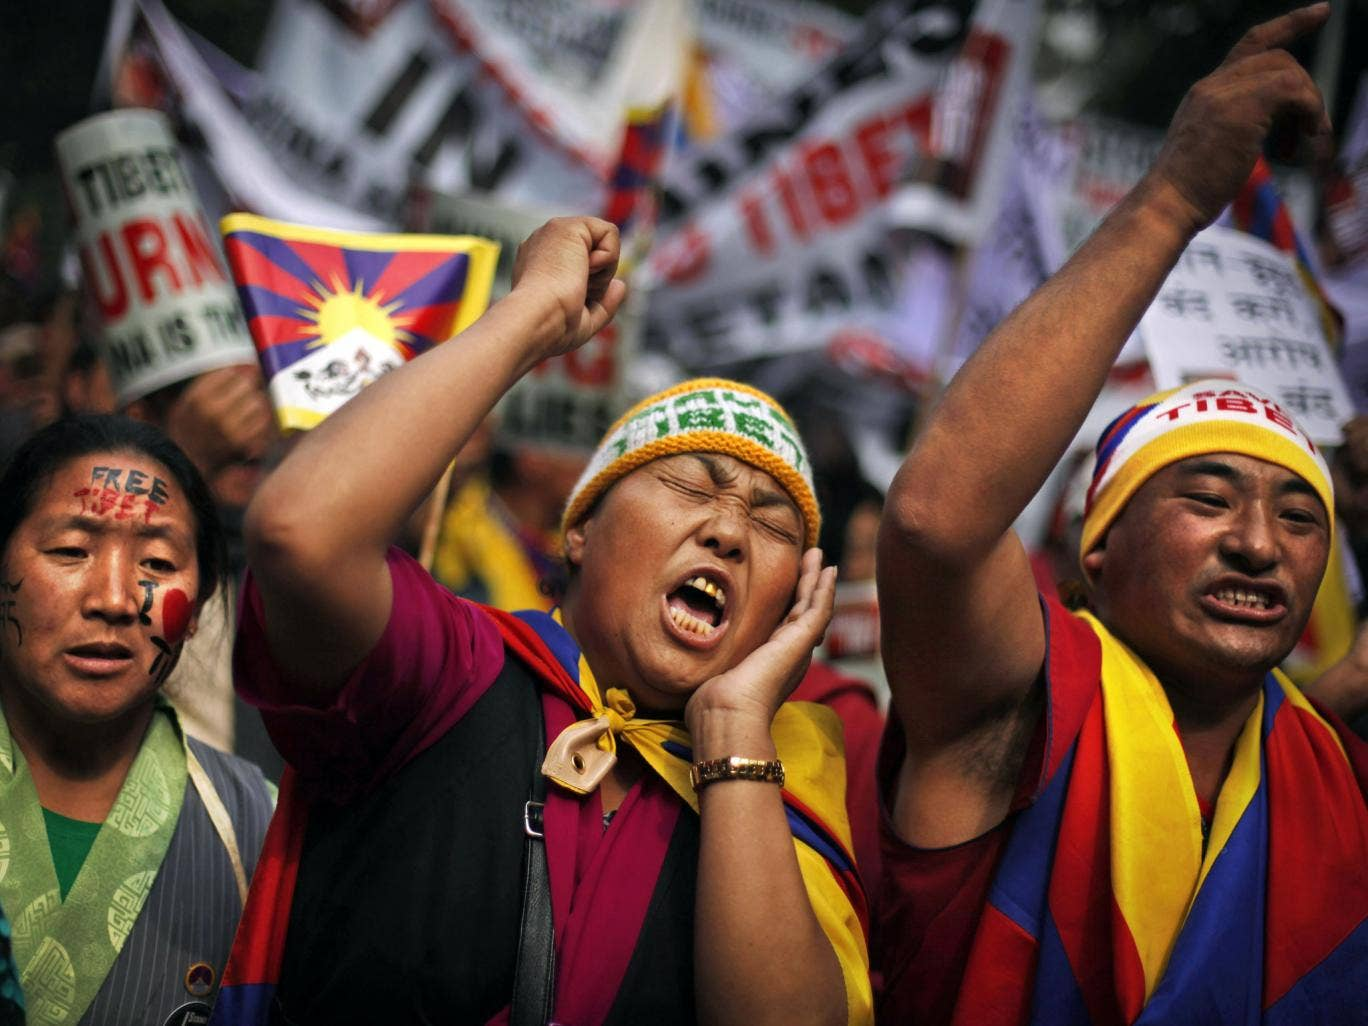 Exiled Tibetans show their support at a rally in Delhi yesterday